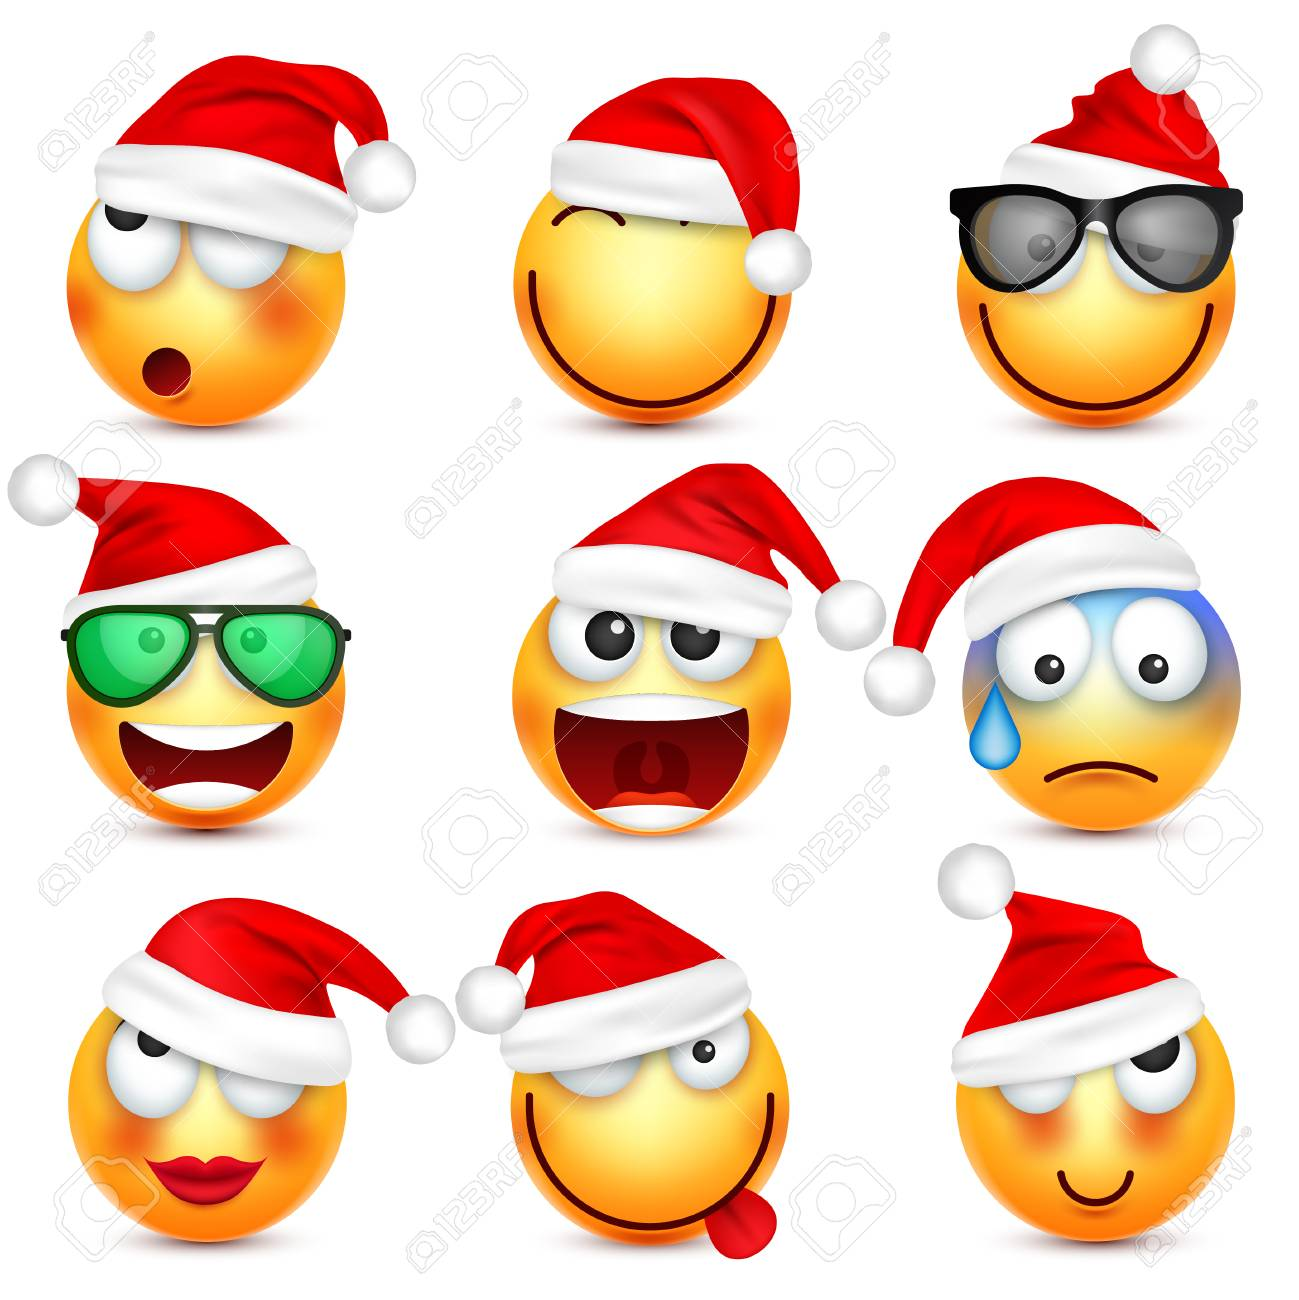 smileyemoticon set yellow face with emotions and christmas hat new year